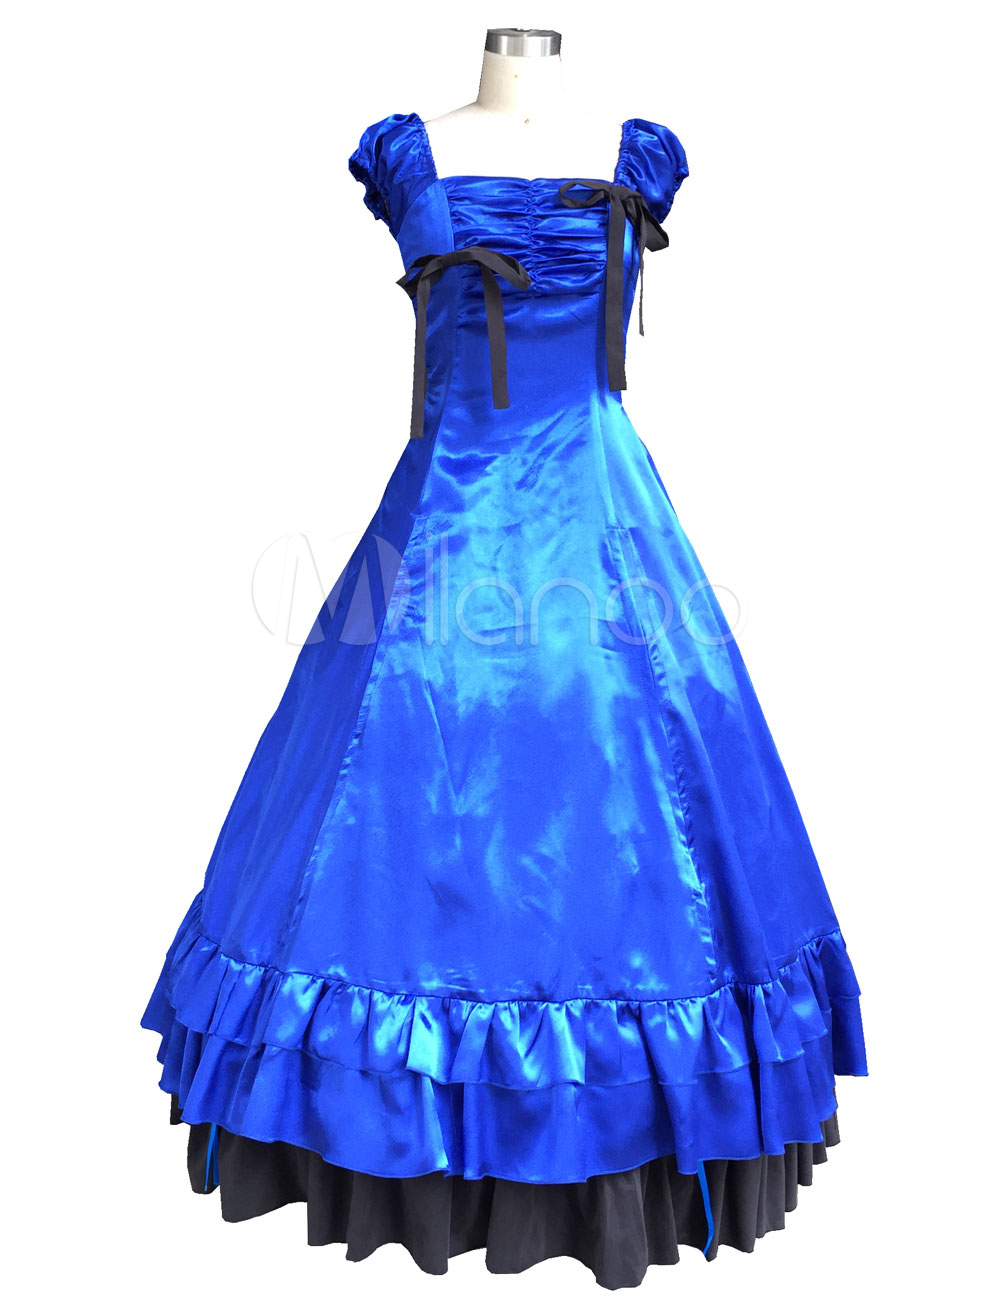 Buy Blue Classic Vintage Lolita Dress Halloween Cosplay Costume Halloween for $111.99 in Milanoo store